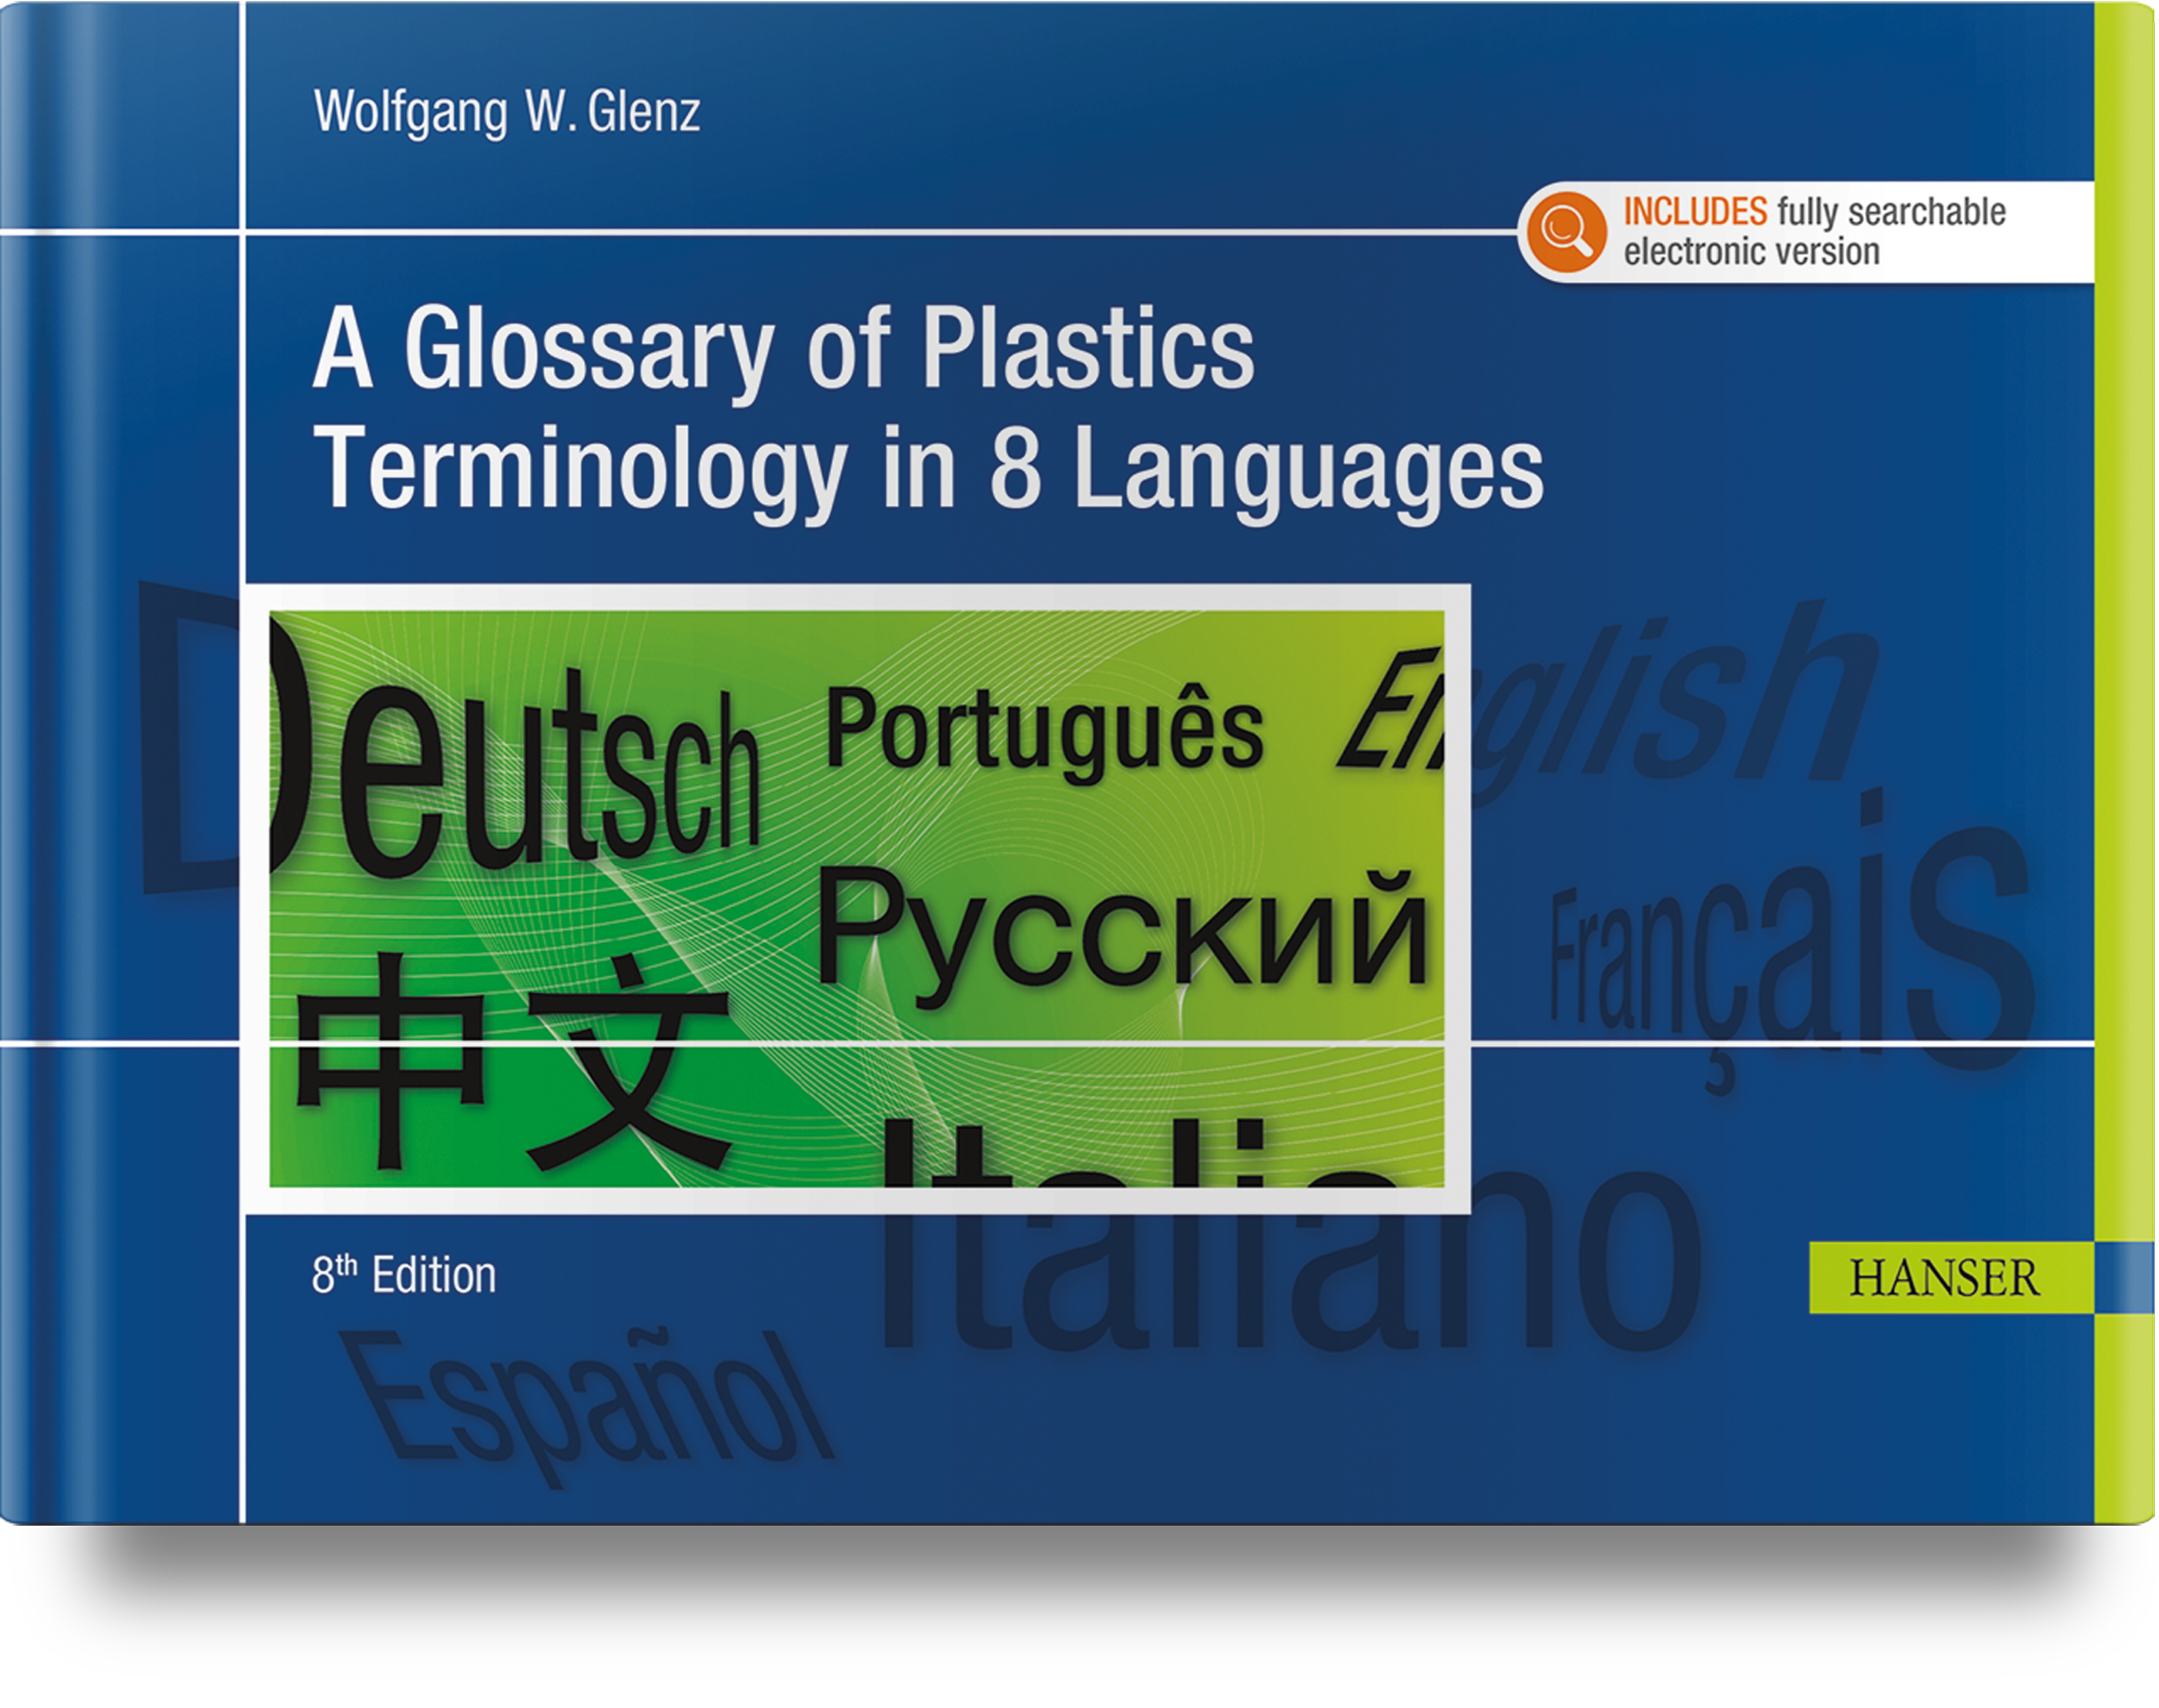 A Glossary of Plastics Terminology in 8 Languages, 978-1-56990-859-4